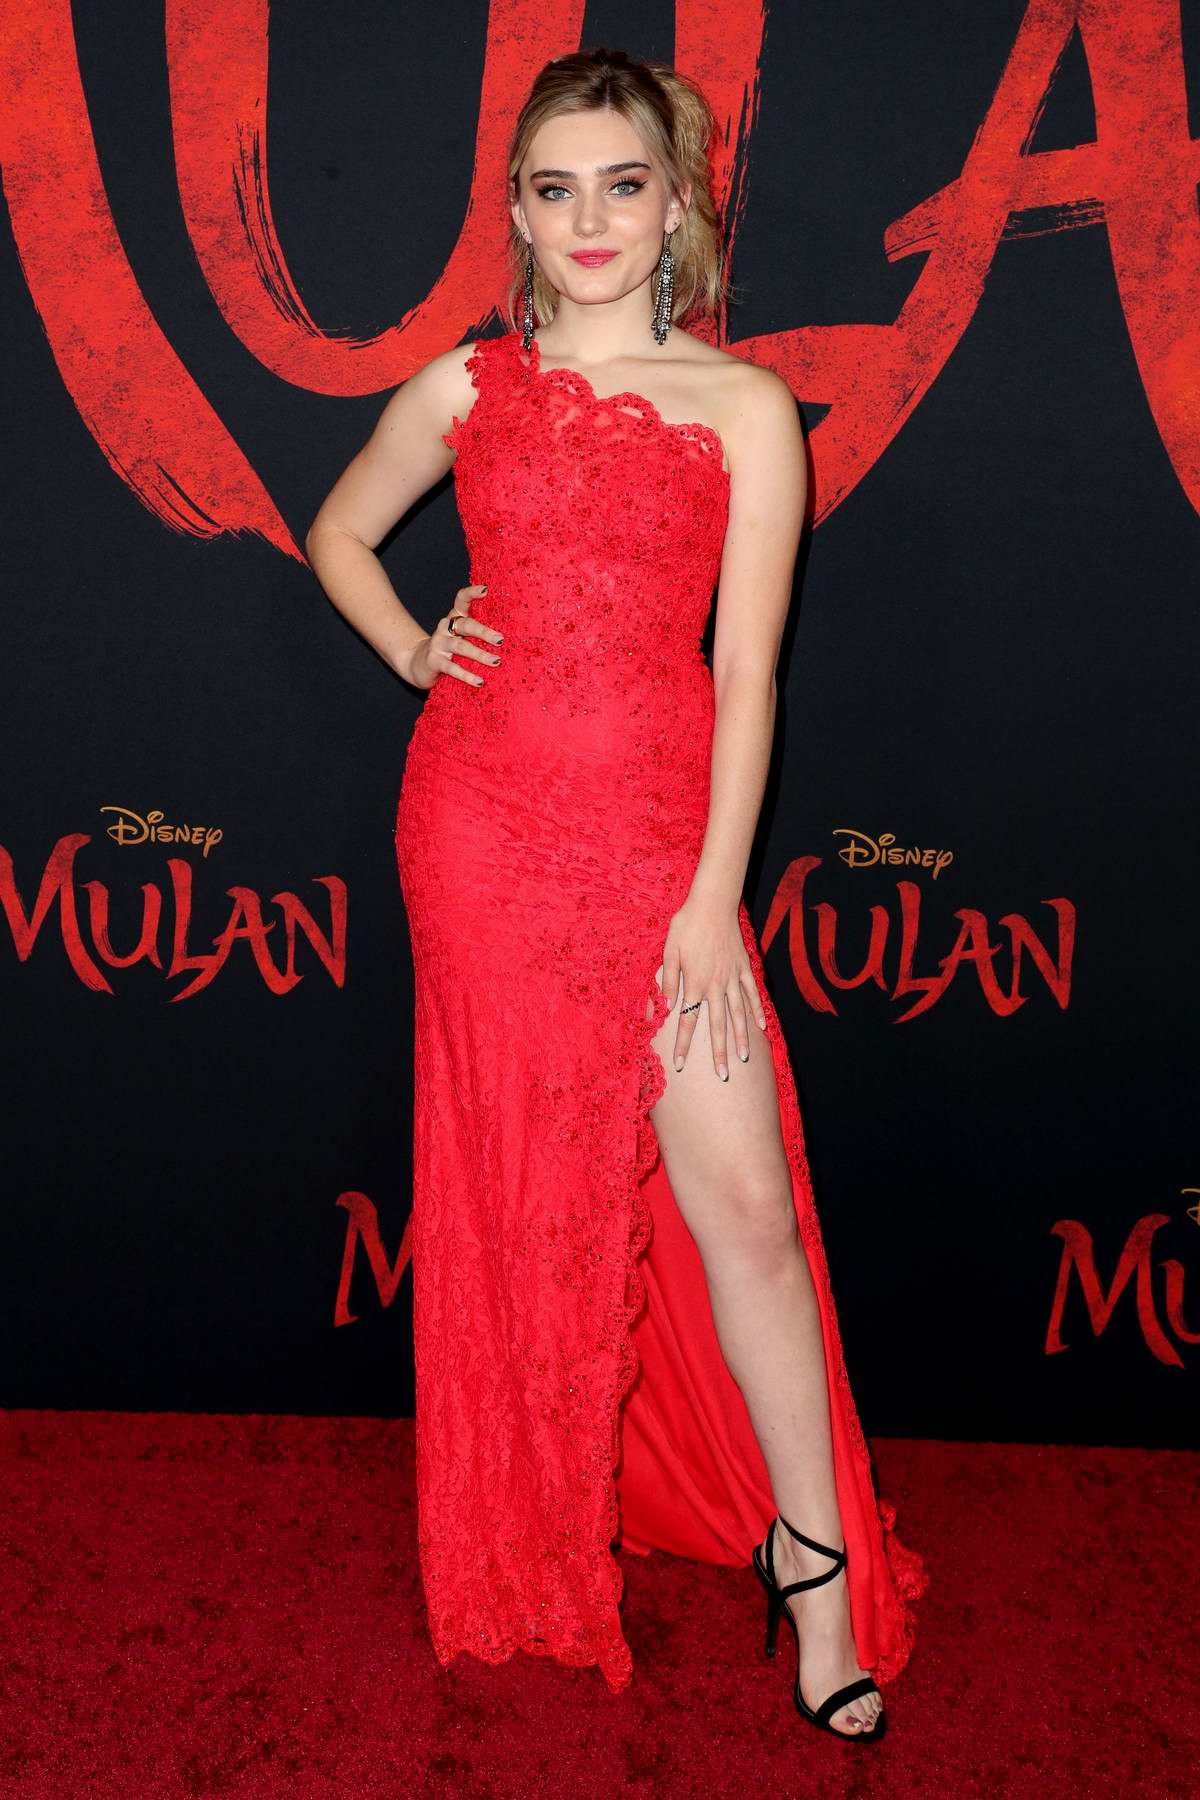 Meg Donnelly attends the Premiere of Disney's 'Mulan' at Dolby Theatre in Los Angeles